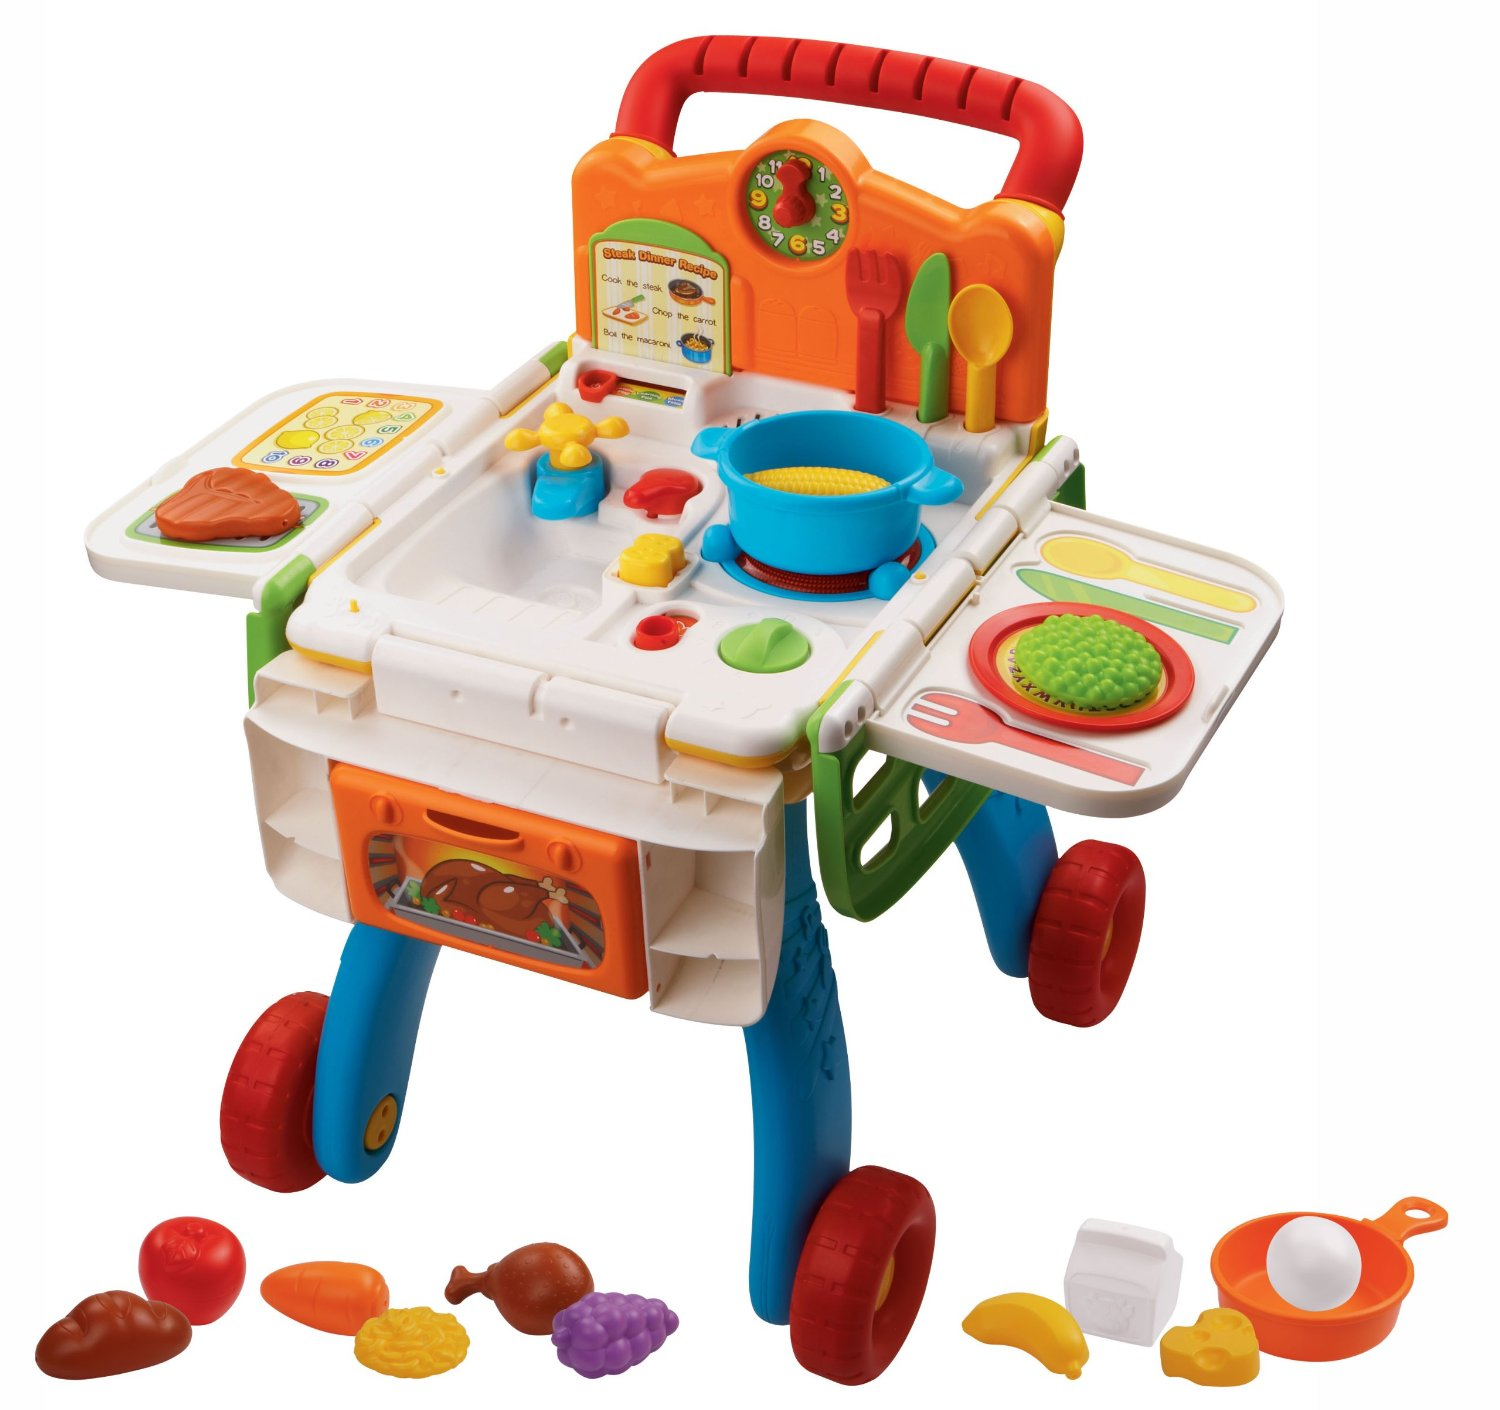 vtech shop cook playset